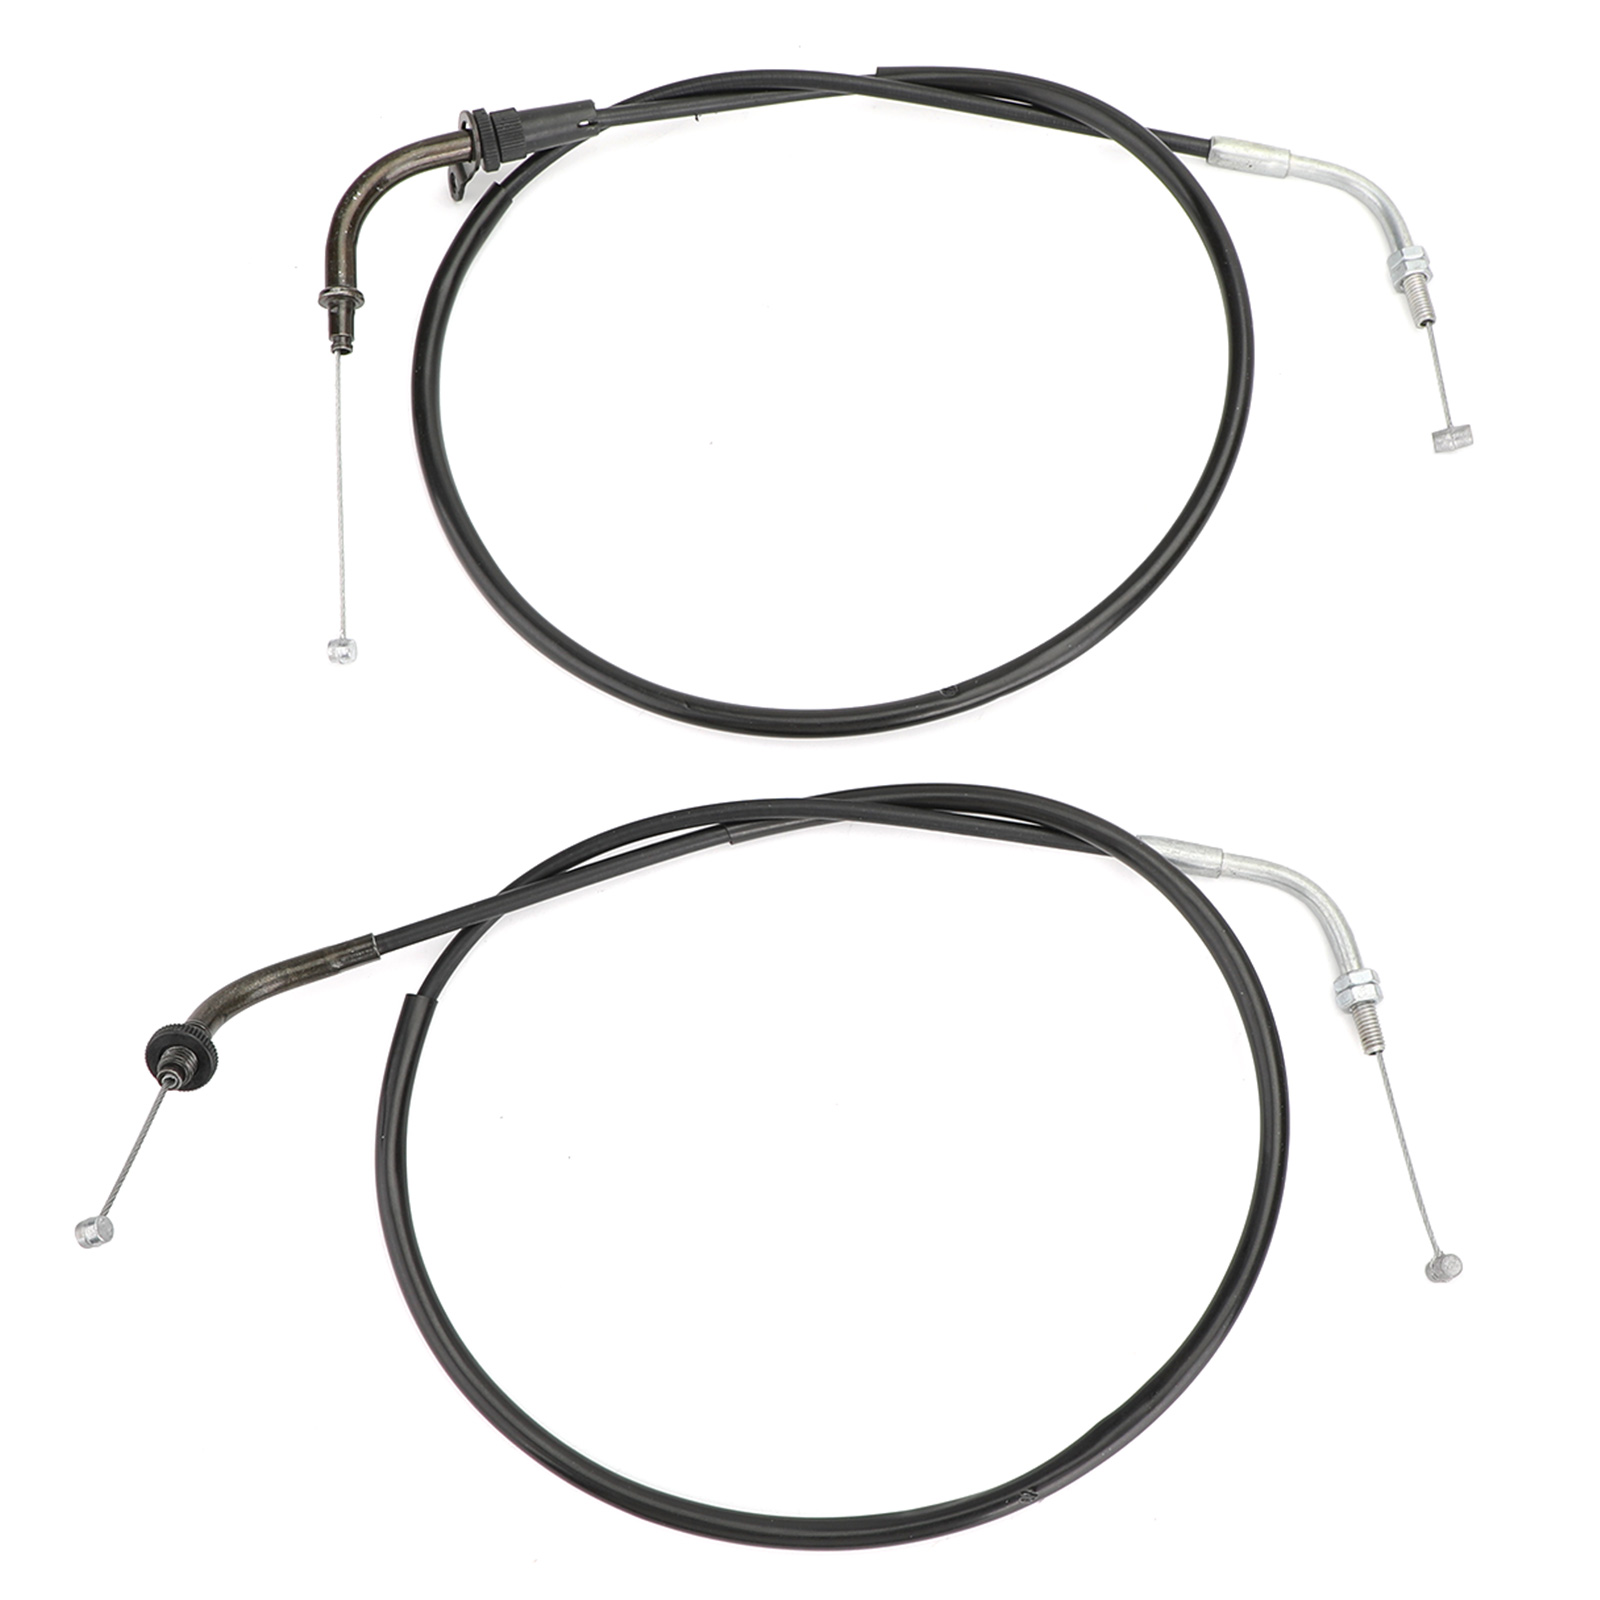 Throttle Cable Wires For Yamaha XVS400 DS400 V-star 96-12